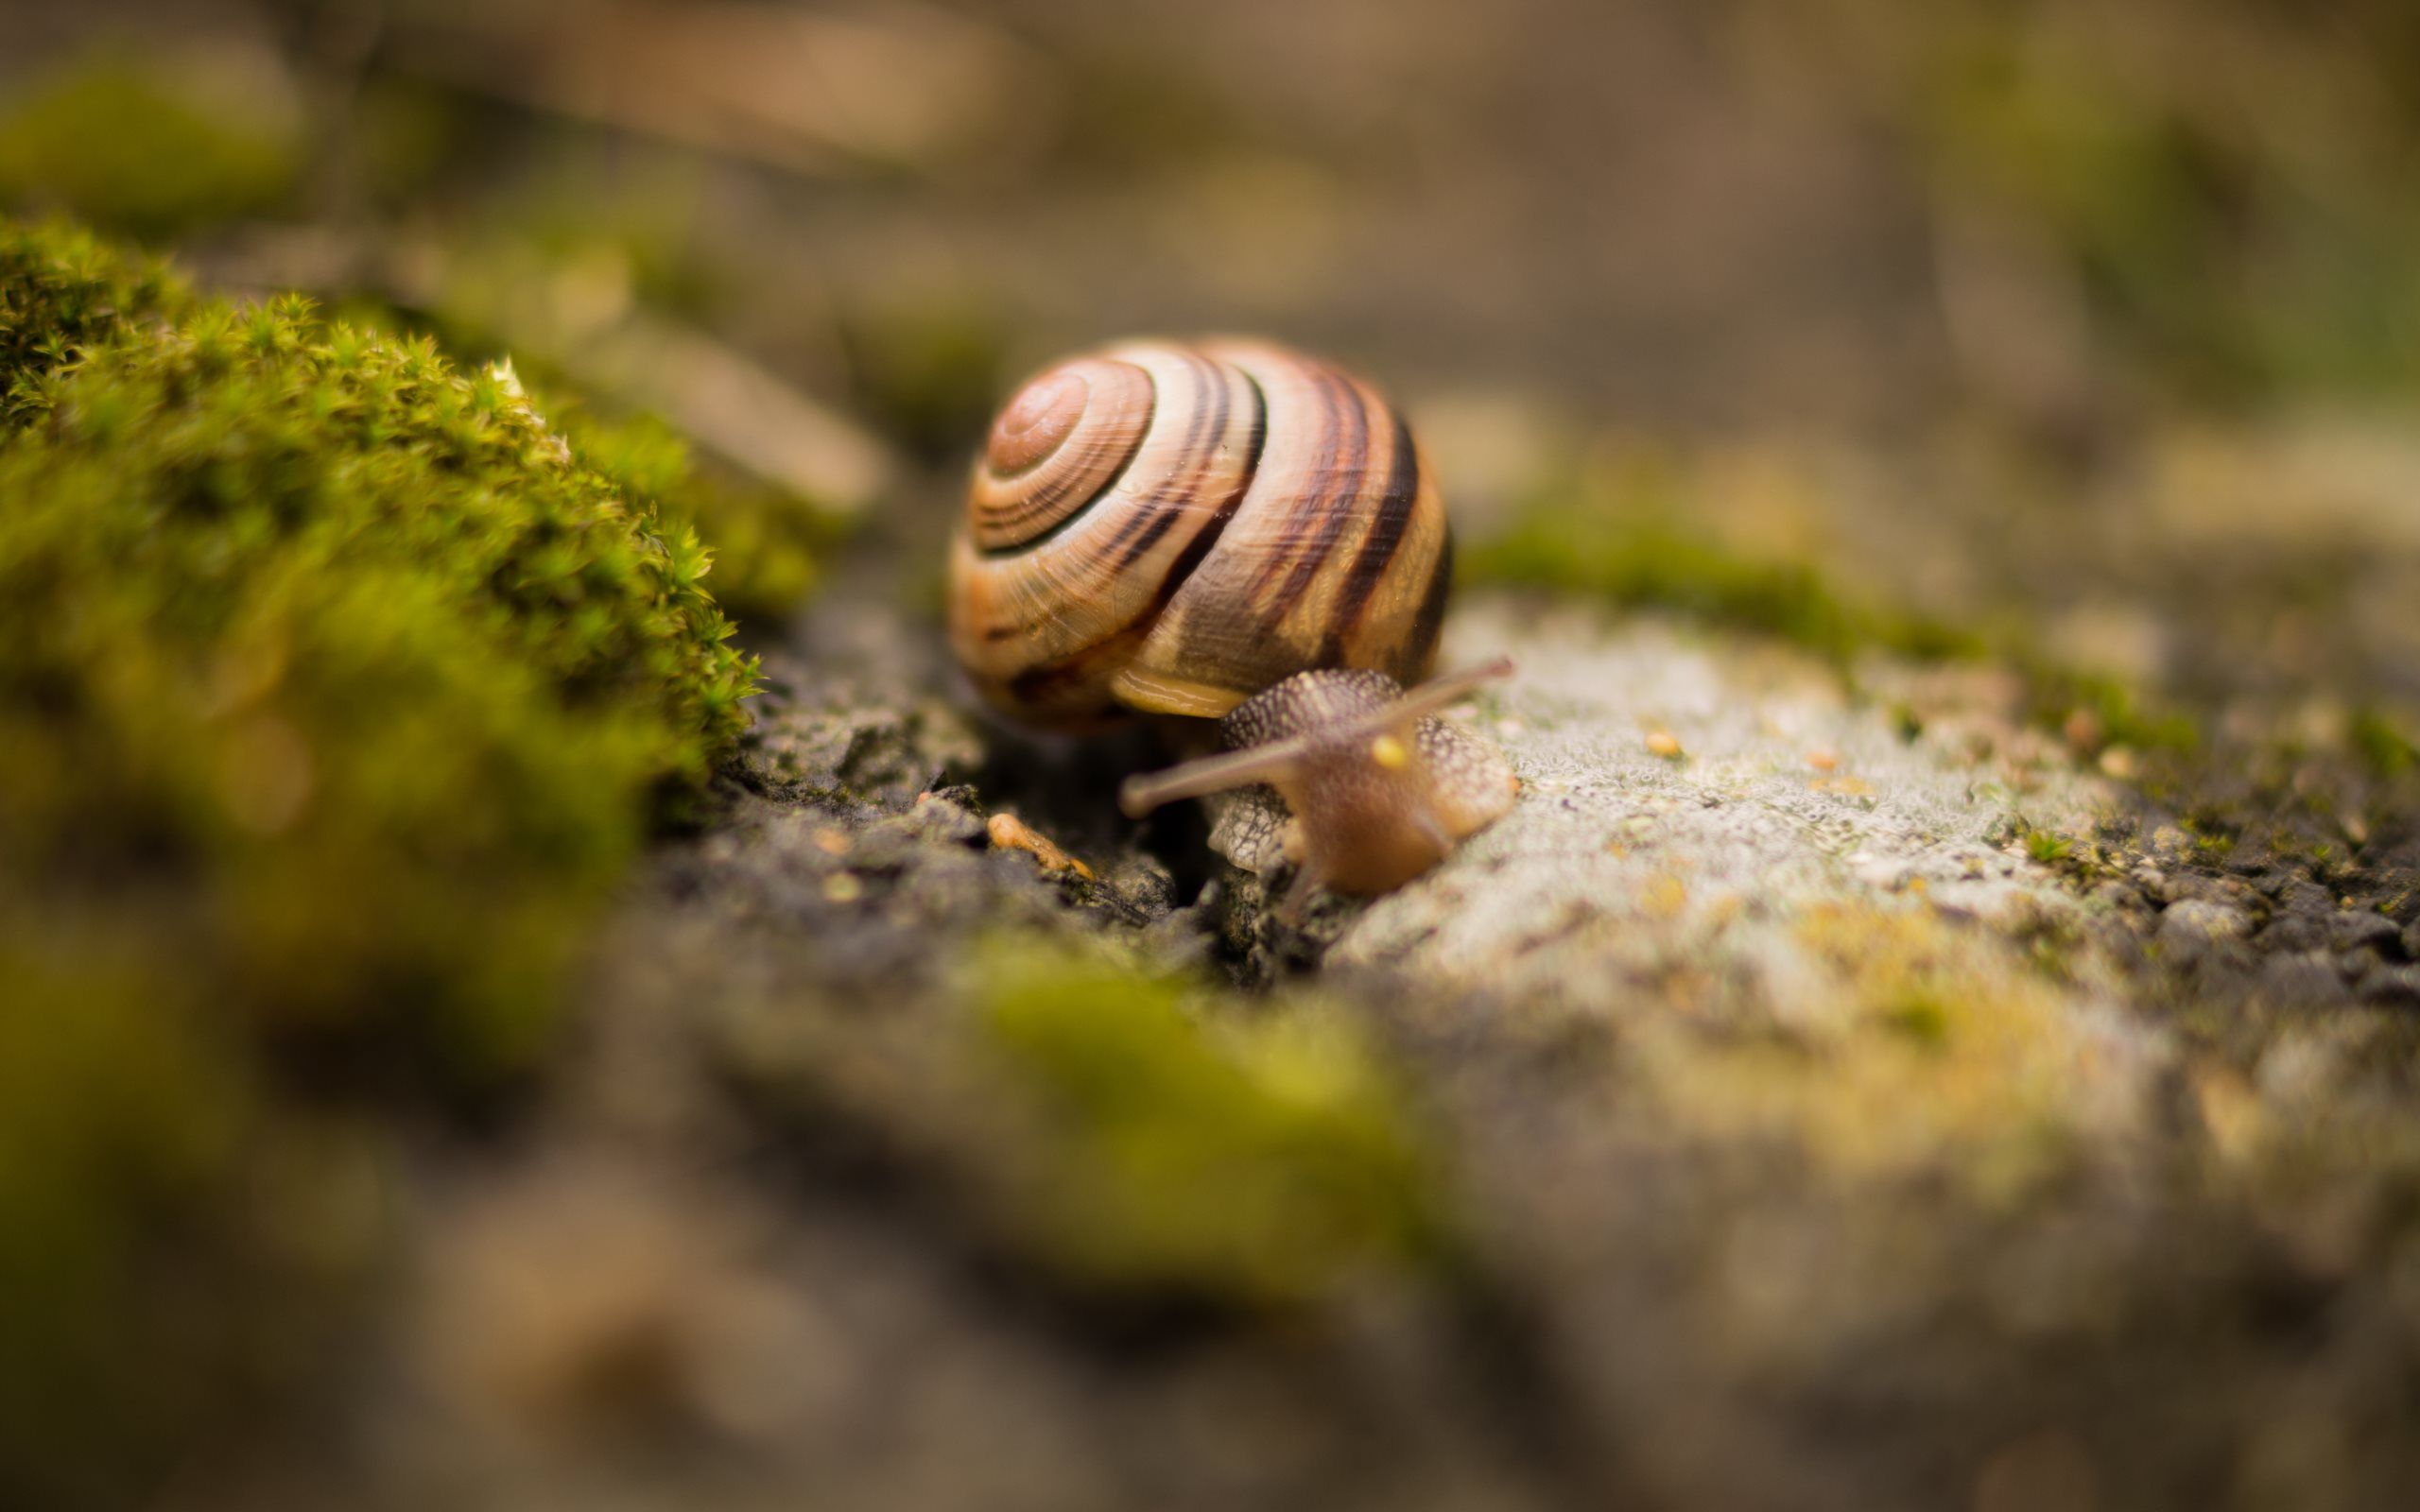 4K Snails Wallpapers High Quality